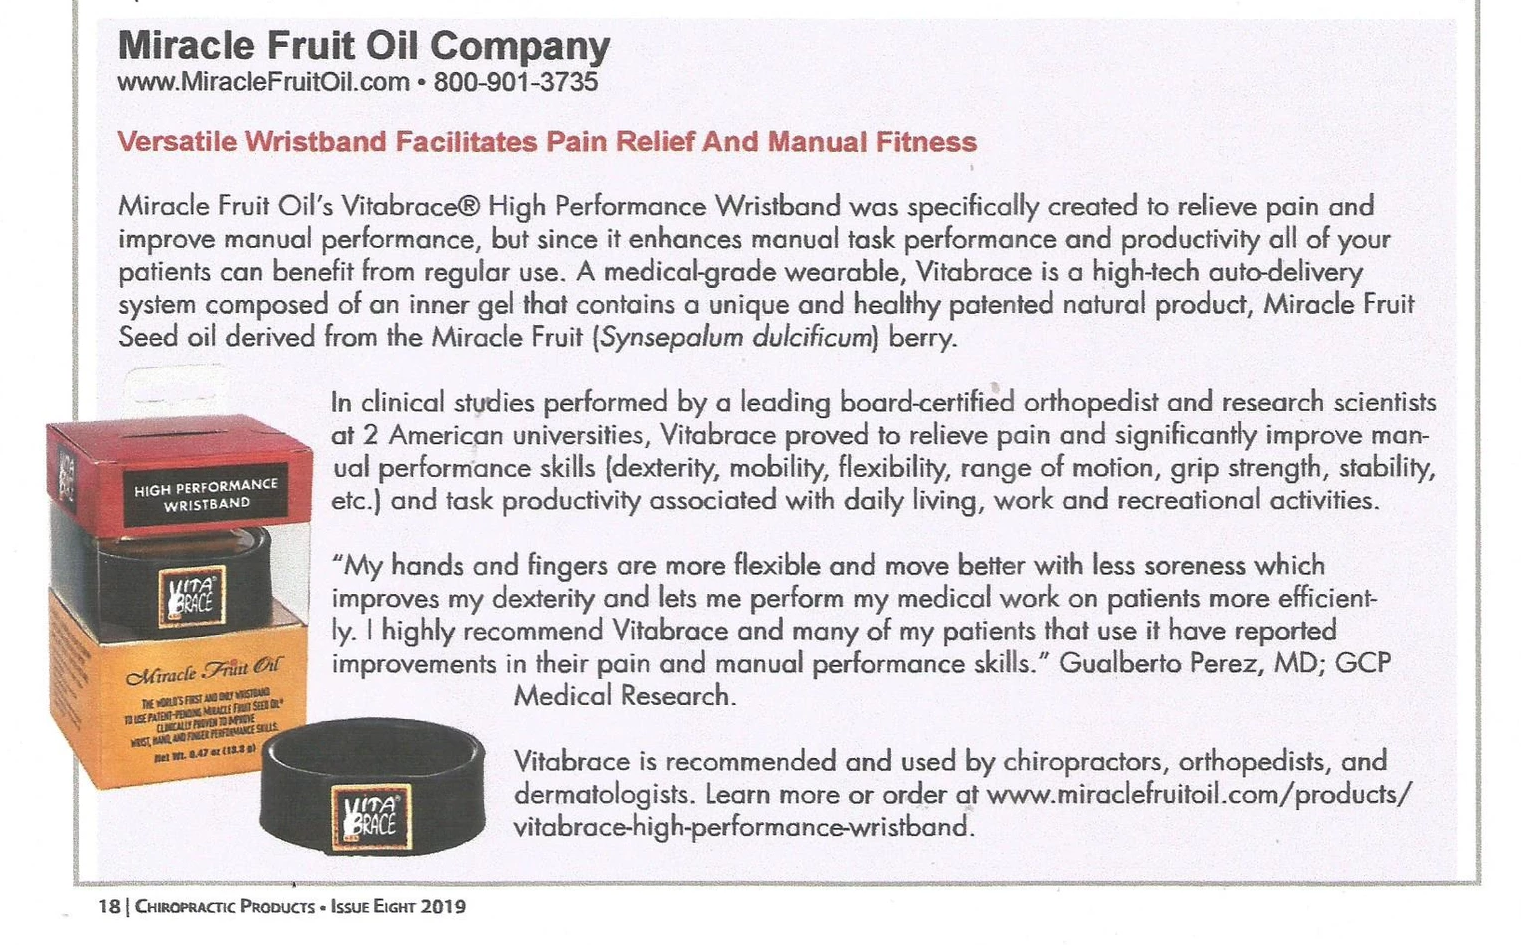 Vitabrace Chiropractic Products